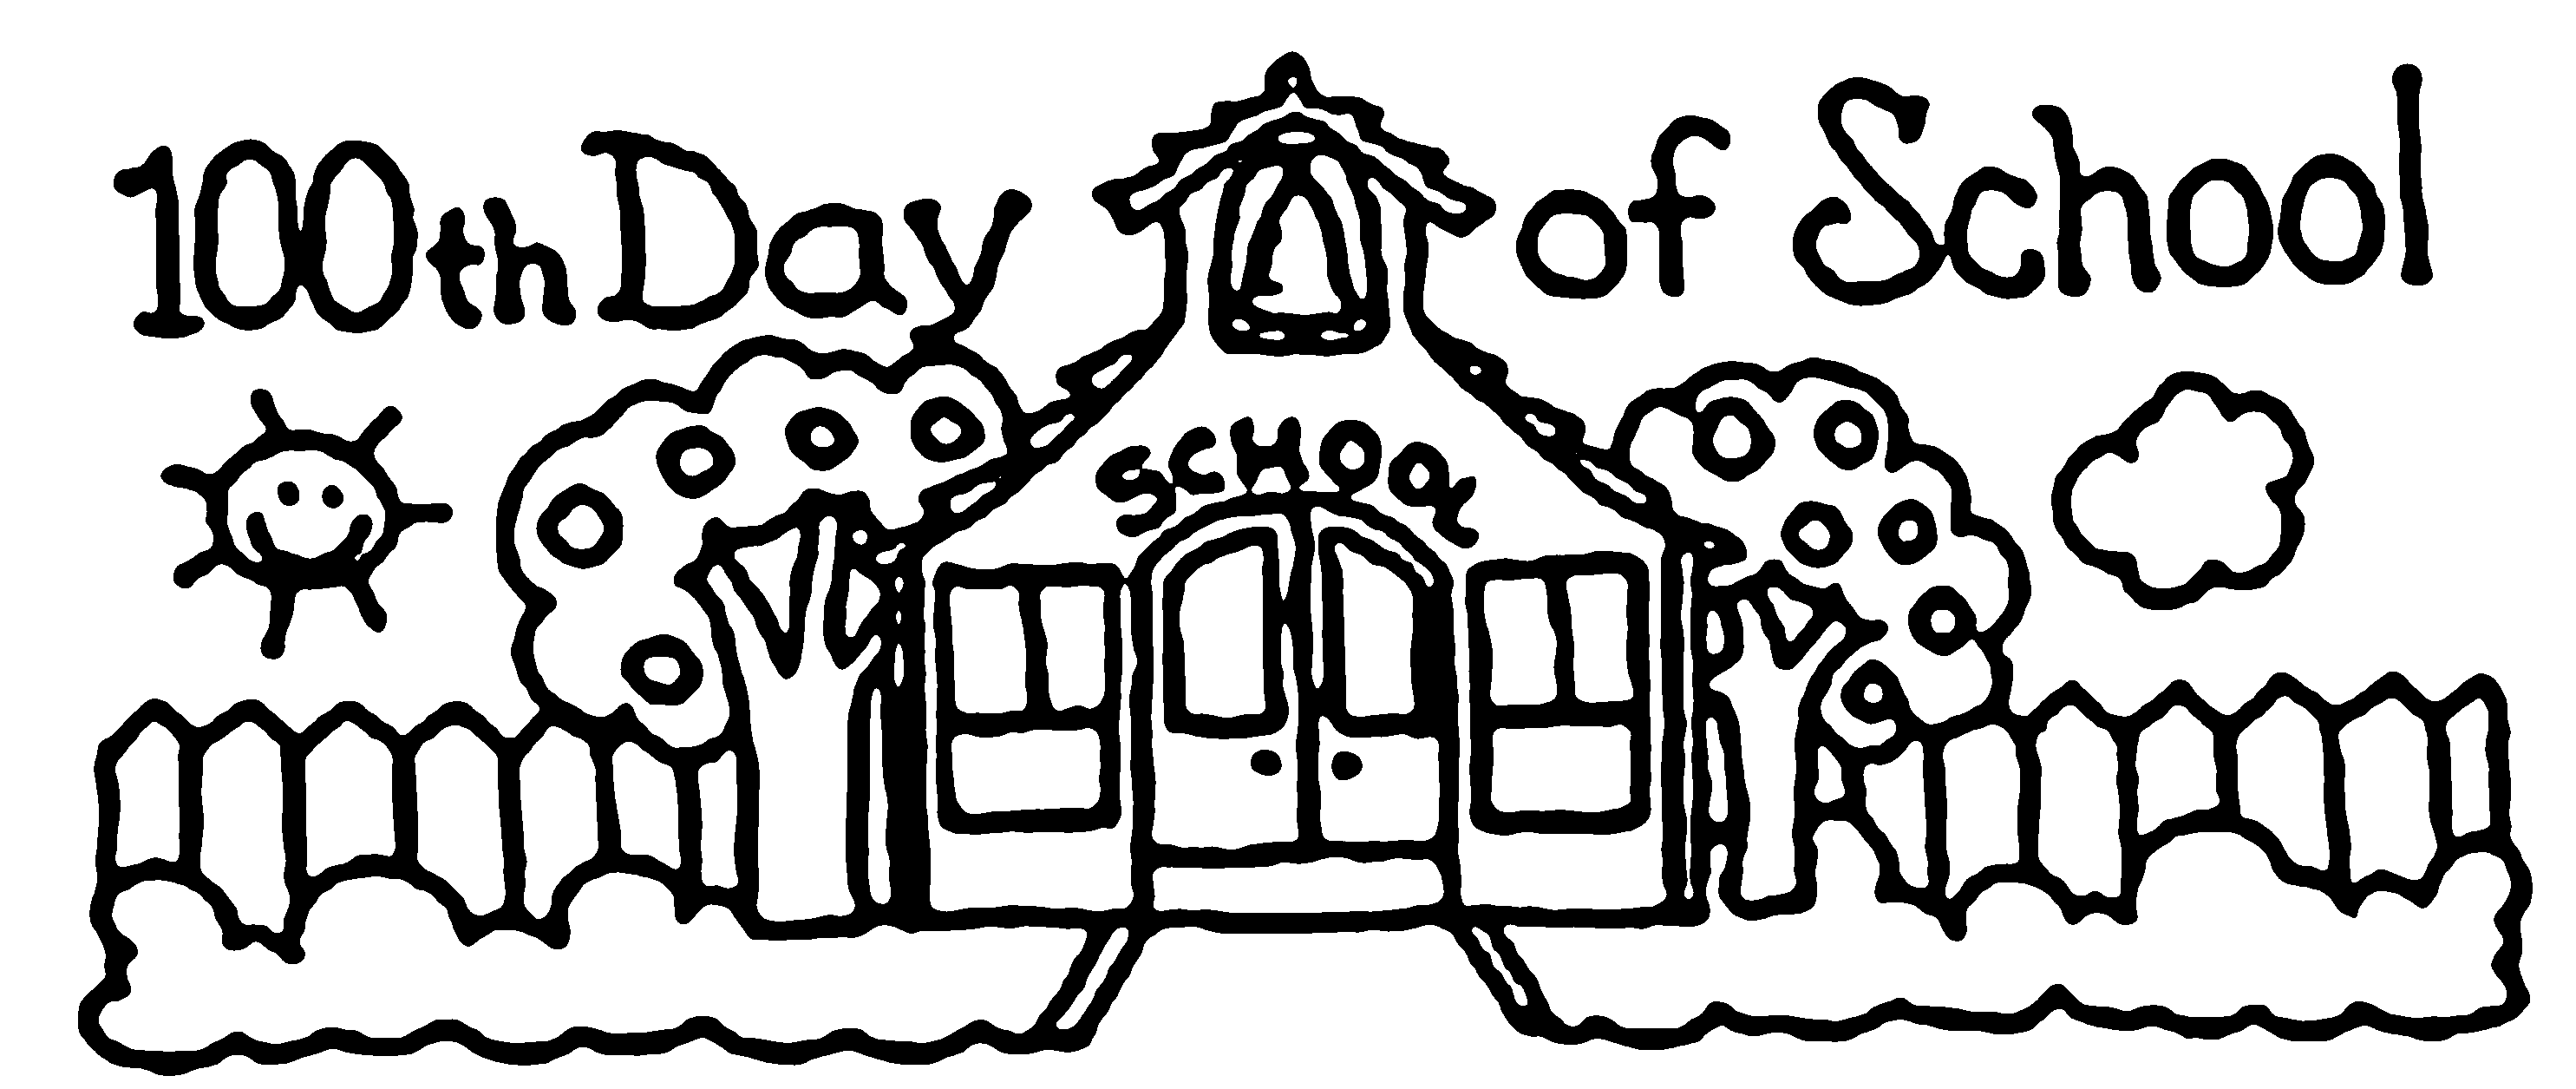 100th day of school coloring pages free coloring home for 100 days of school coloring page